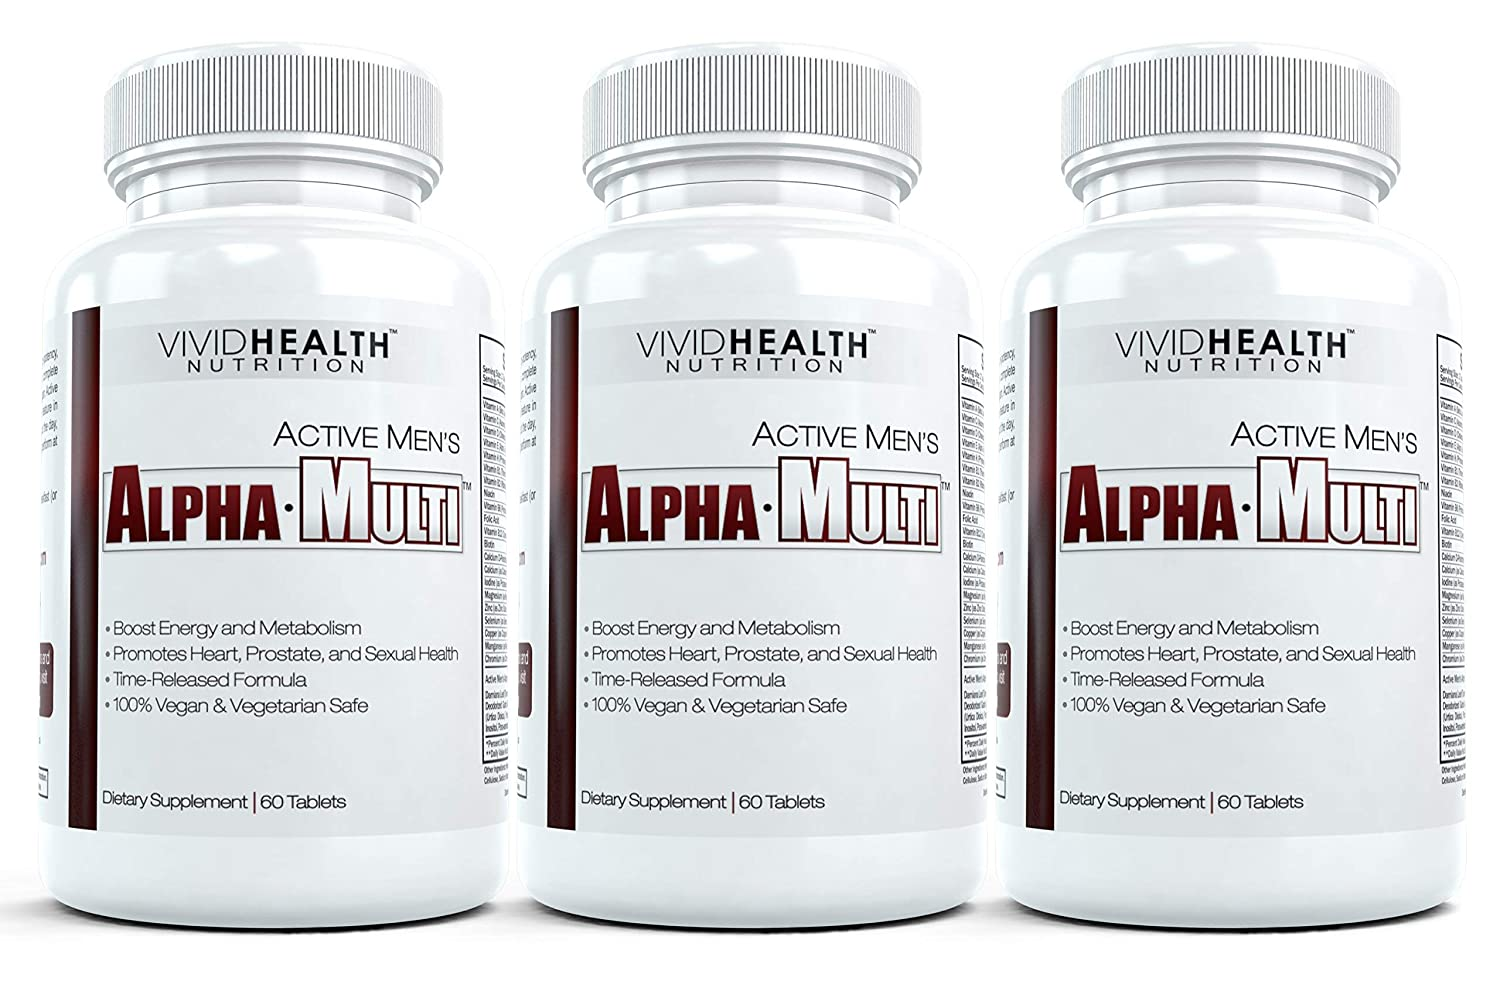 Active Men s Alpha-Multi – Complete One A Day Multivitamin for Men Supports Prostate Cardiovascular Health with Vitamin D, A, C, E, B12 Boost Energy, Libido, Virility 3 Bottles, 60 Tabs Each